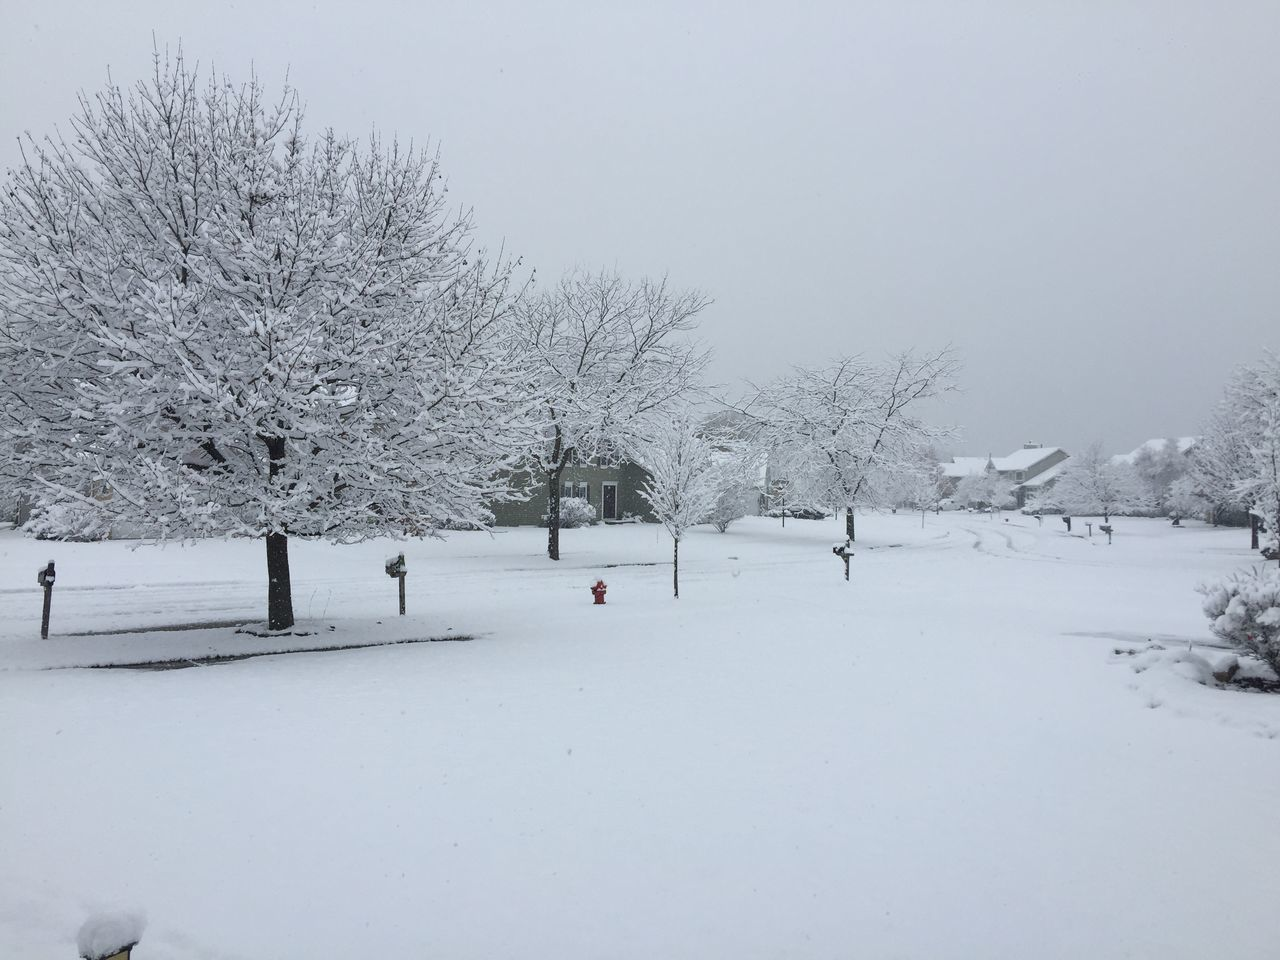 First Snowfall Snow ❄ Snowing ❄ Snowing Again Black And White Photography Winter Sky Winter Wonderland Winter Trees Oswego, IL United States Landscape Landscape_Collection Landscape_photography Nature Beauty In Nature